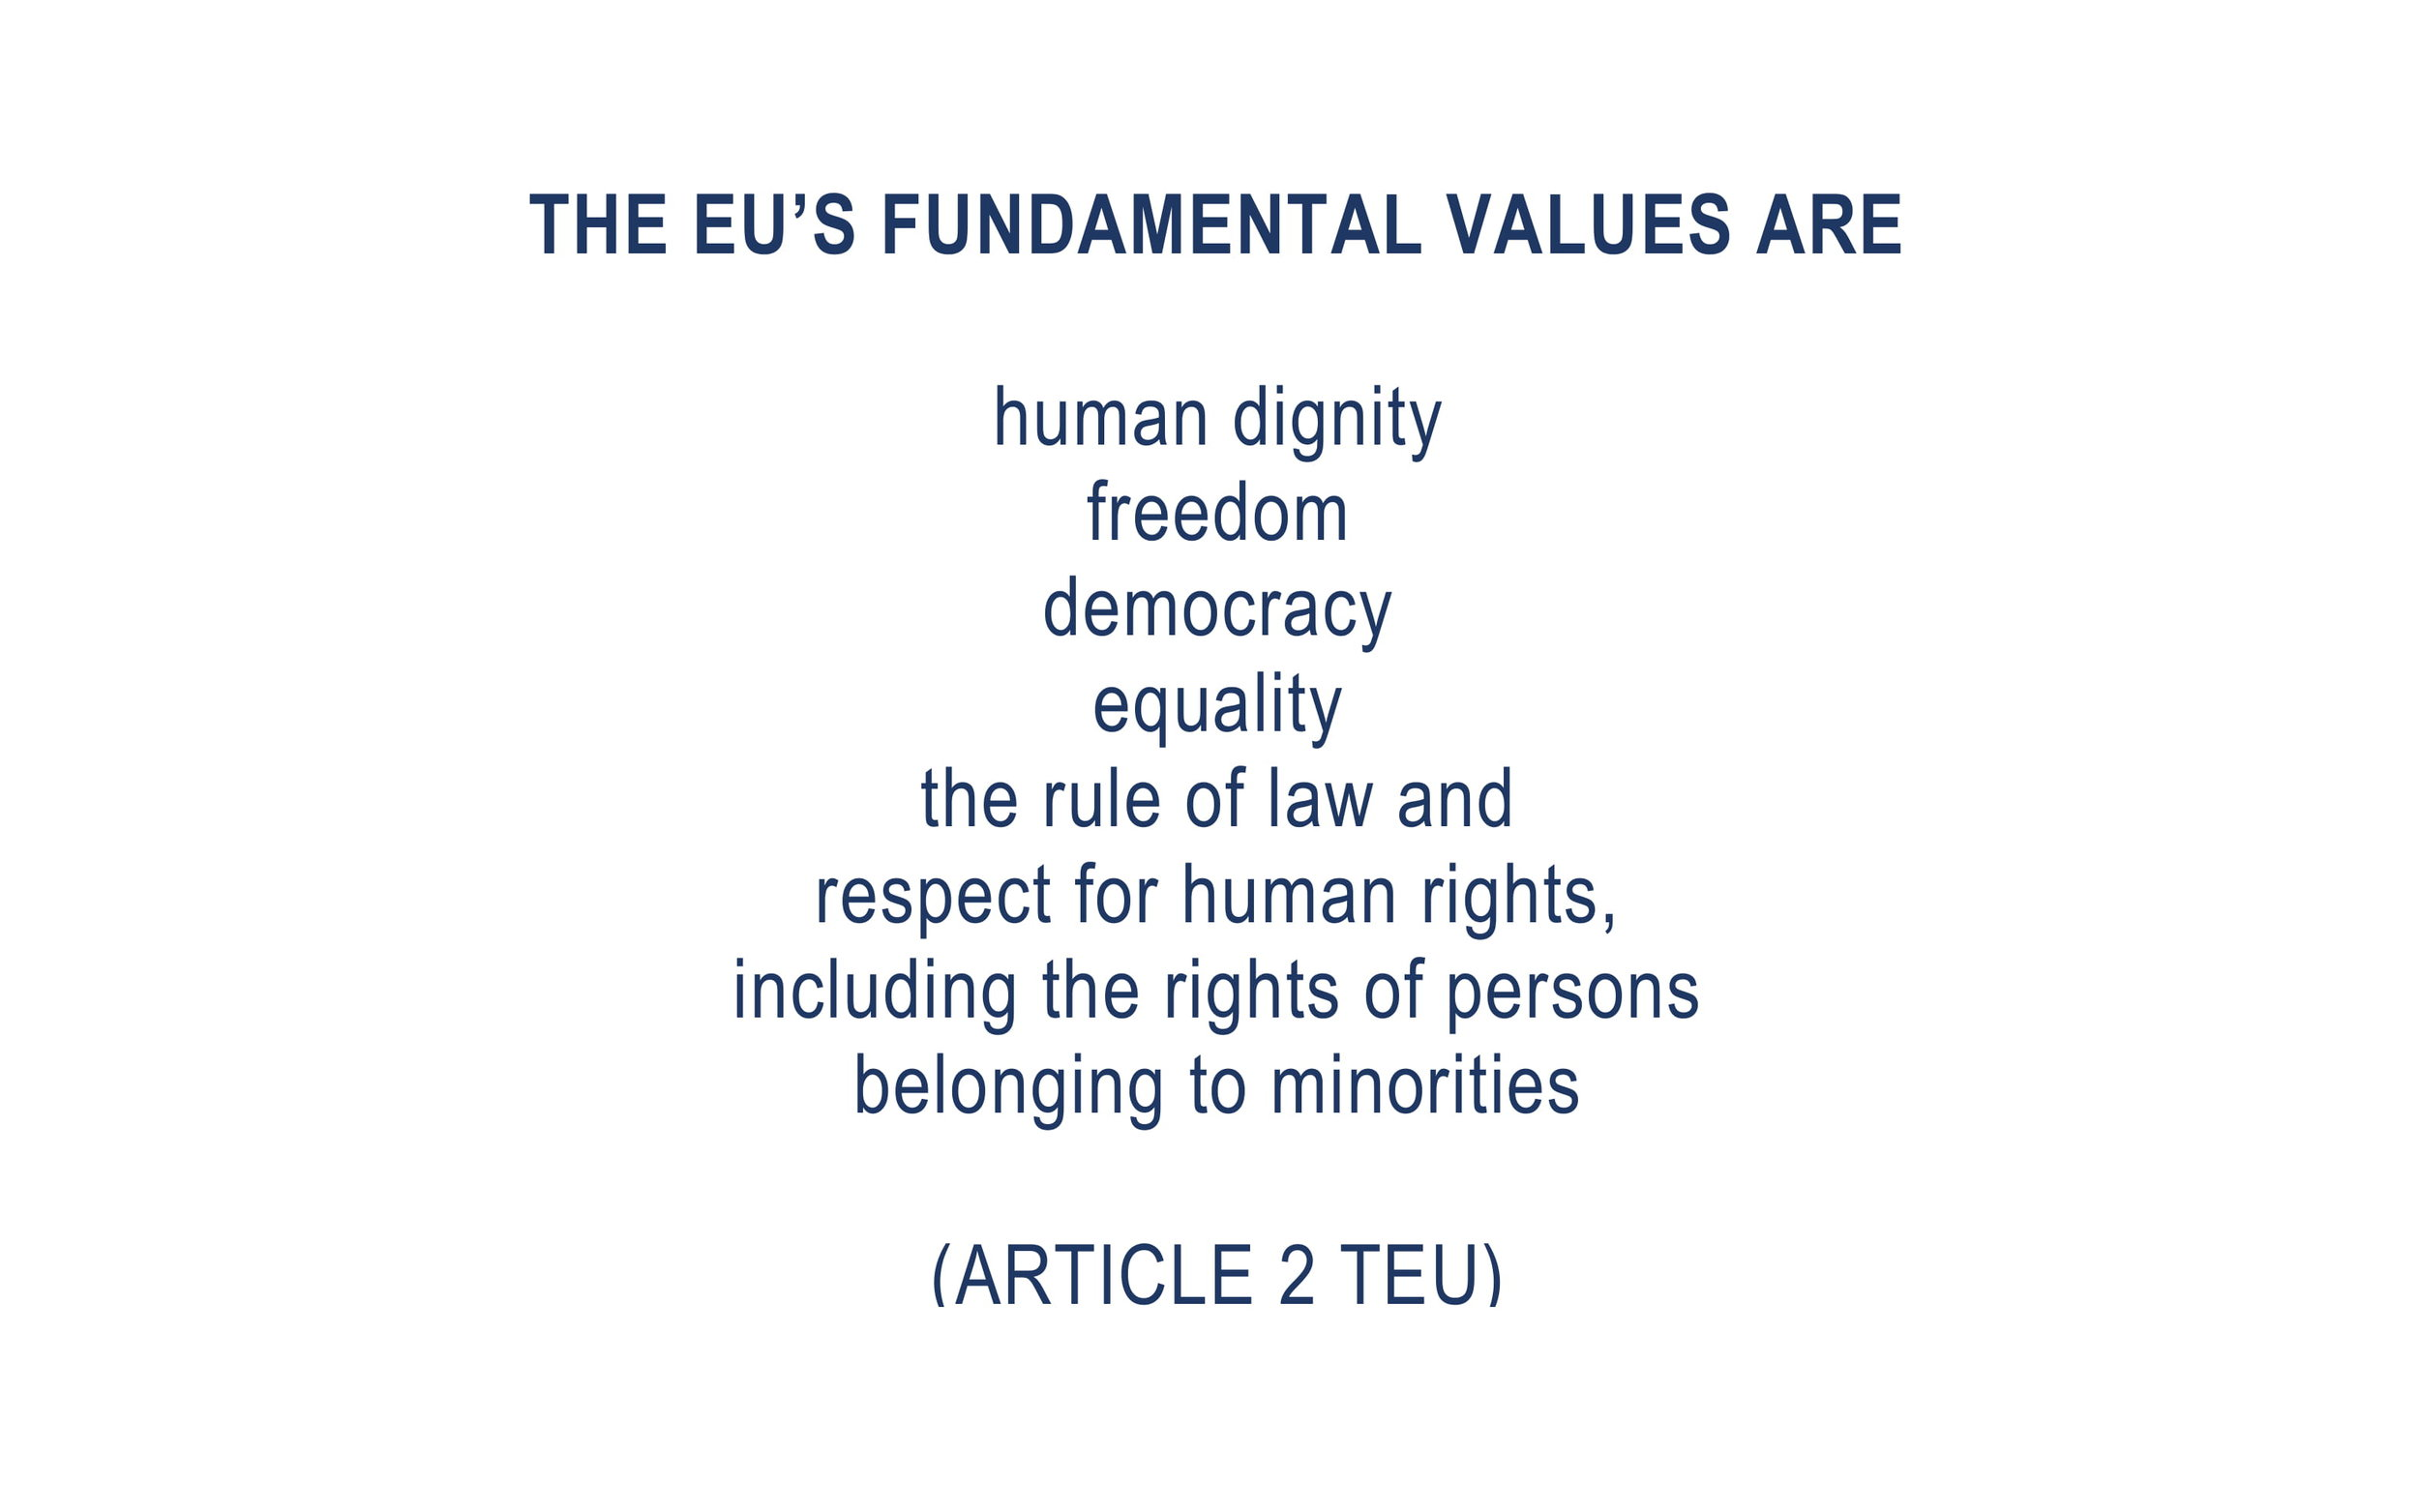 Appeal to MEPs_10 PM Orban Quotes_Article7Vote-04.jpg